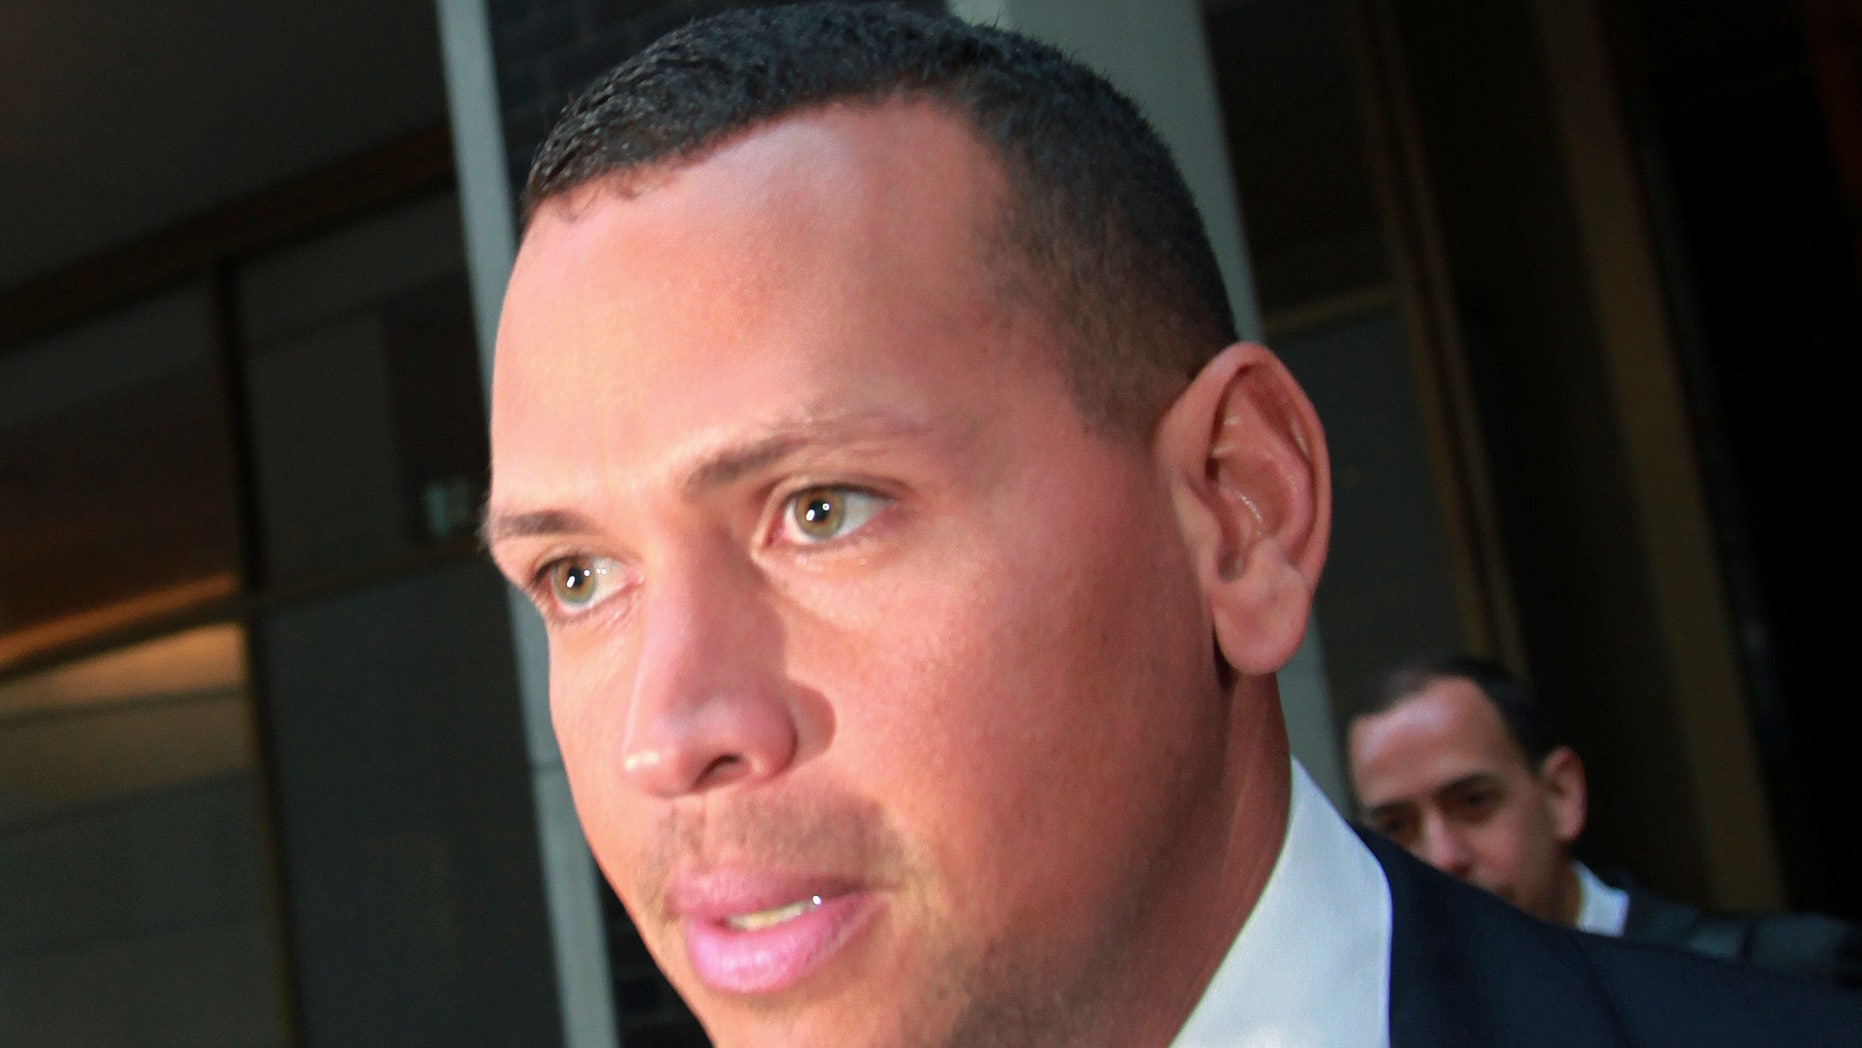 FILE- In this Sept. 30, 2013 file photo, Alex Rodriguez leaves the offices of Major League Baseball in New York. Rodriguez has accepted his season-long suspension from Major League Baseball, the longest penalty in the sport's history related to performance-enhancing drugs. Rodriguez withdrew his lawsuits against Major League Baseball, Commissioner Bud Selig and the players' association to overturn his season-long suspension on Friday, Feb. 7, 2014. The notices of dismissal were filed in federal court in Manhattan. (AP Photo/David Karp, File)